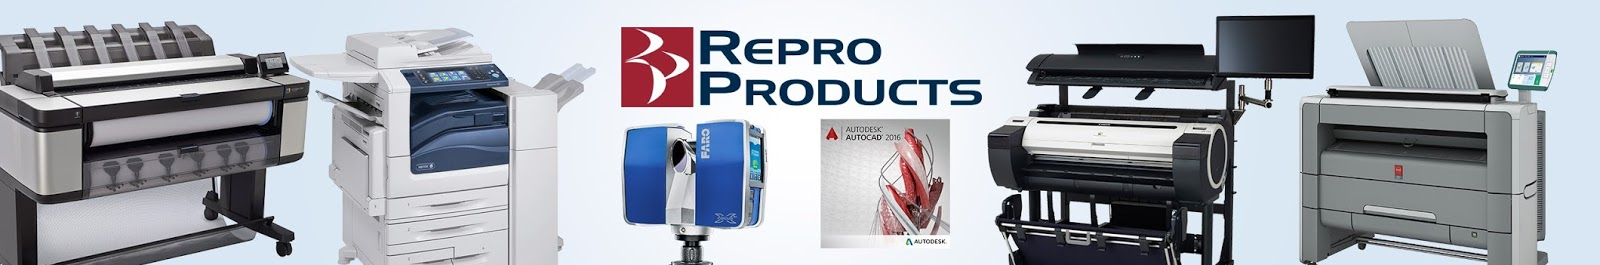 Xerox Archives | Repro Products